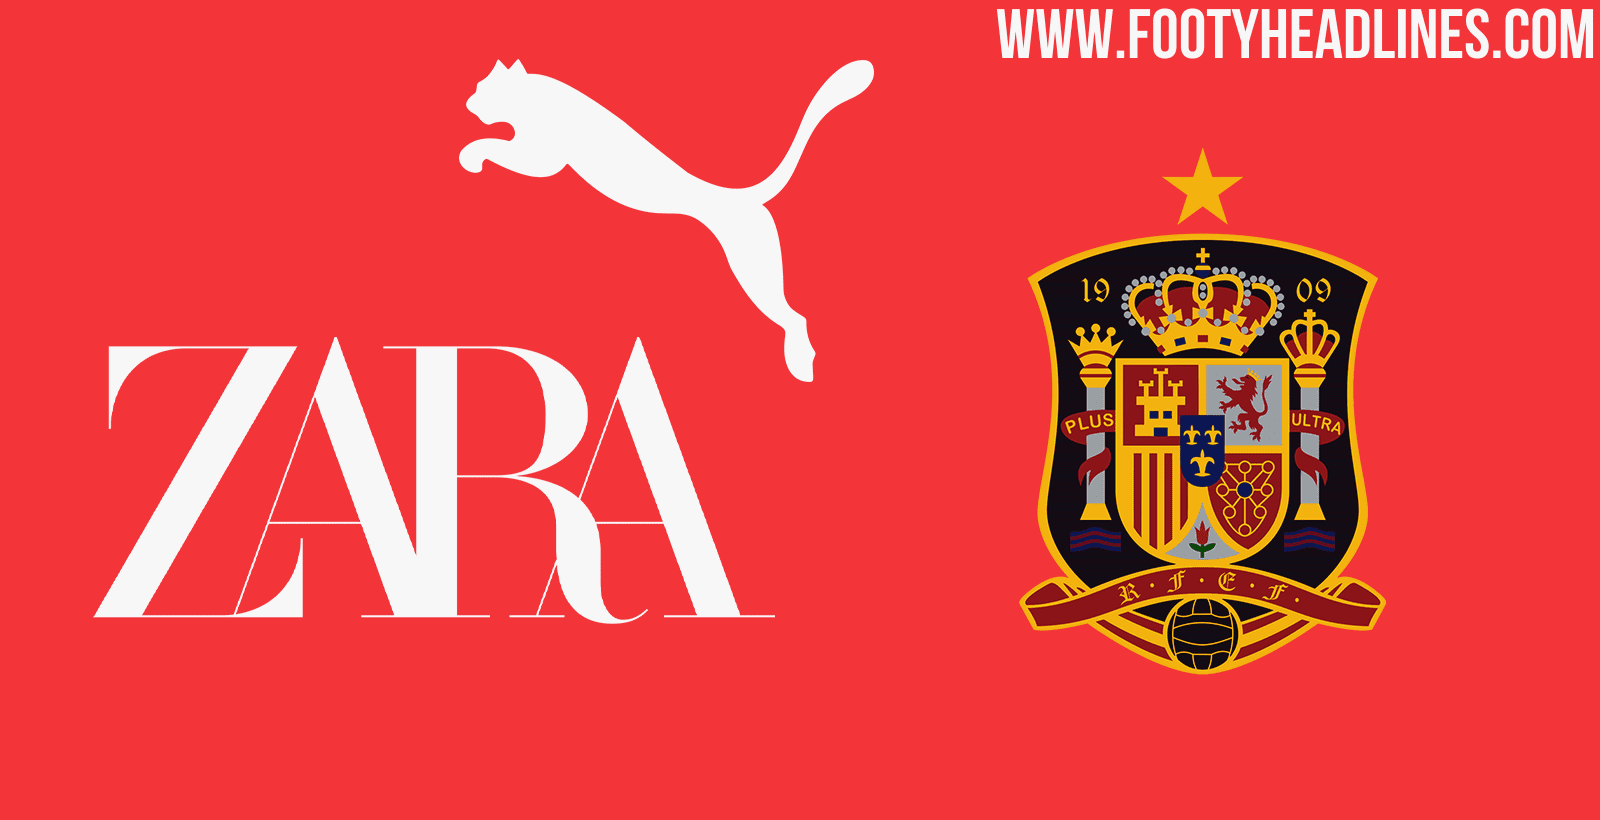 Spain Contacted Zara & Puma To Replace Adidas As Kit Maker